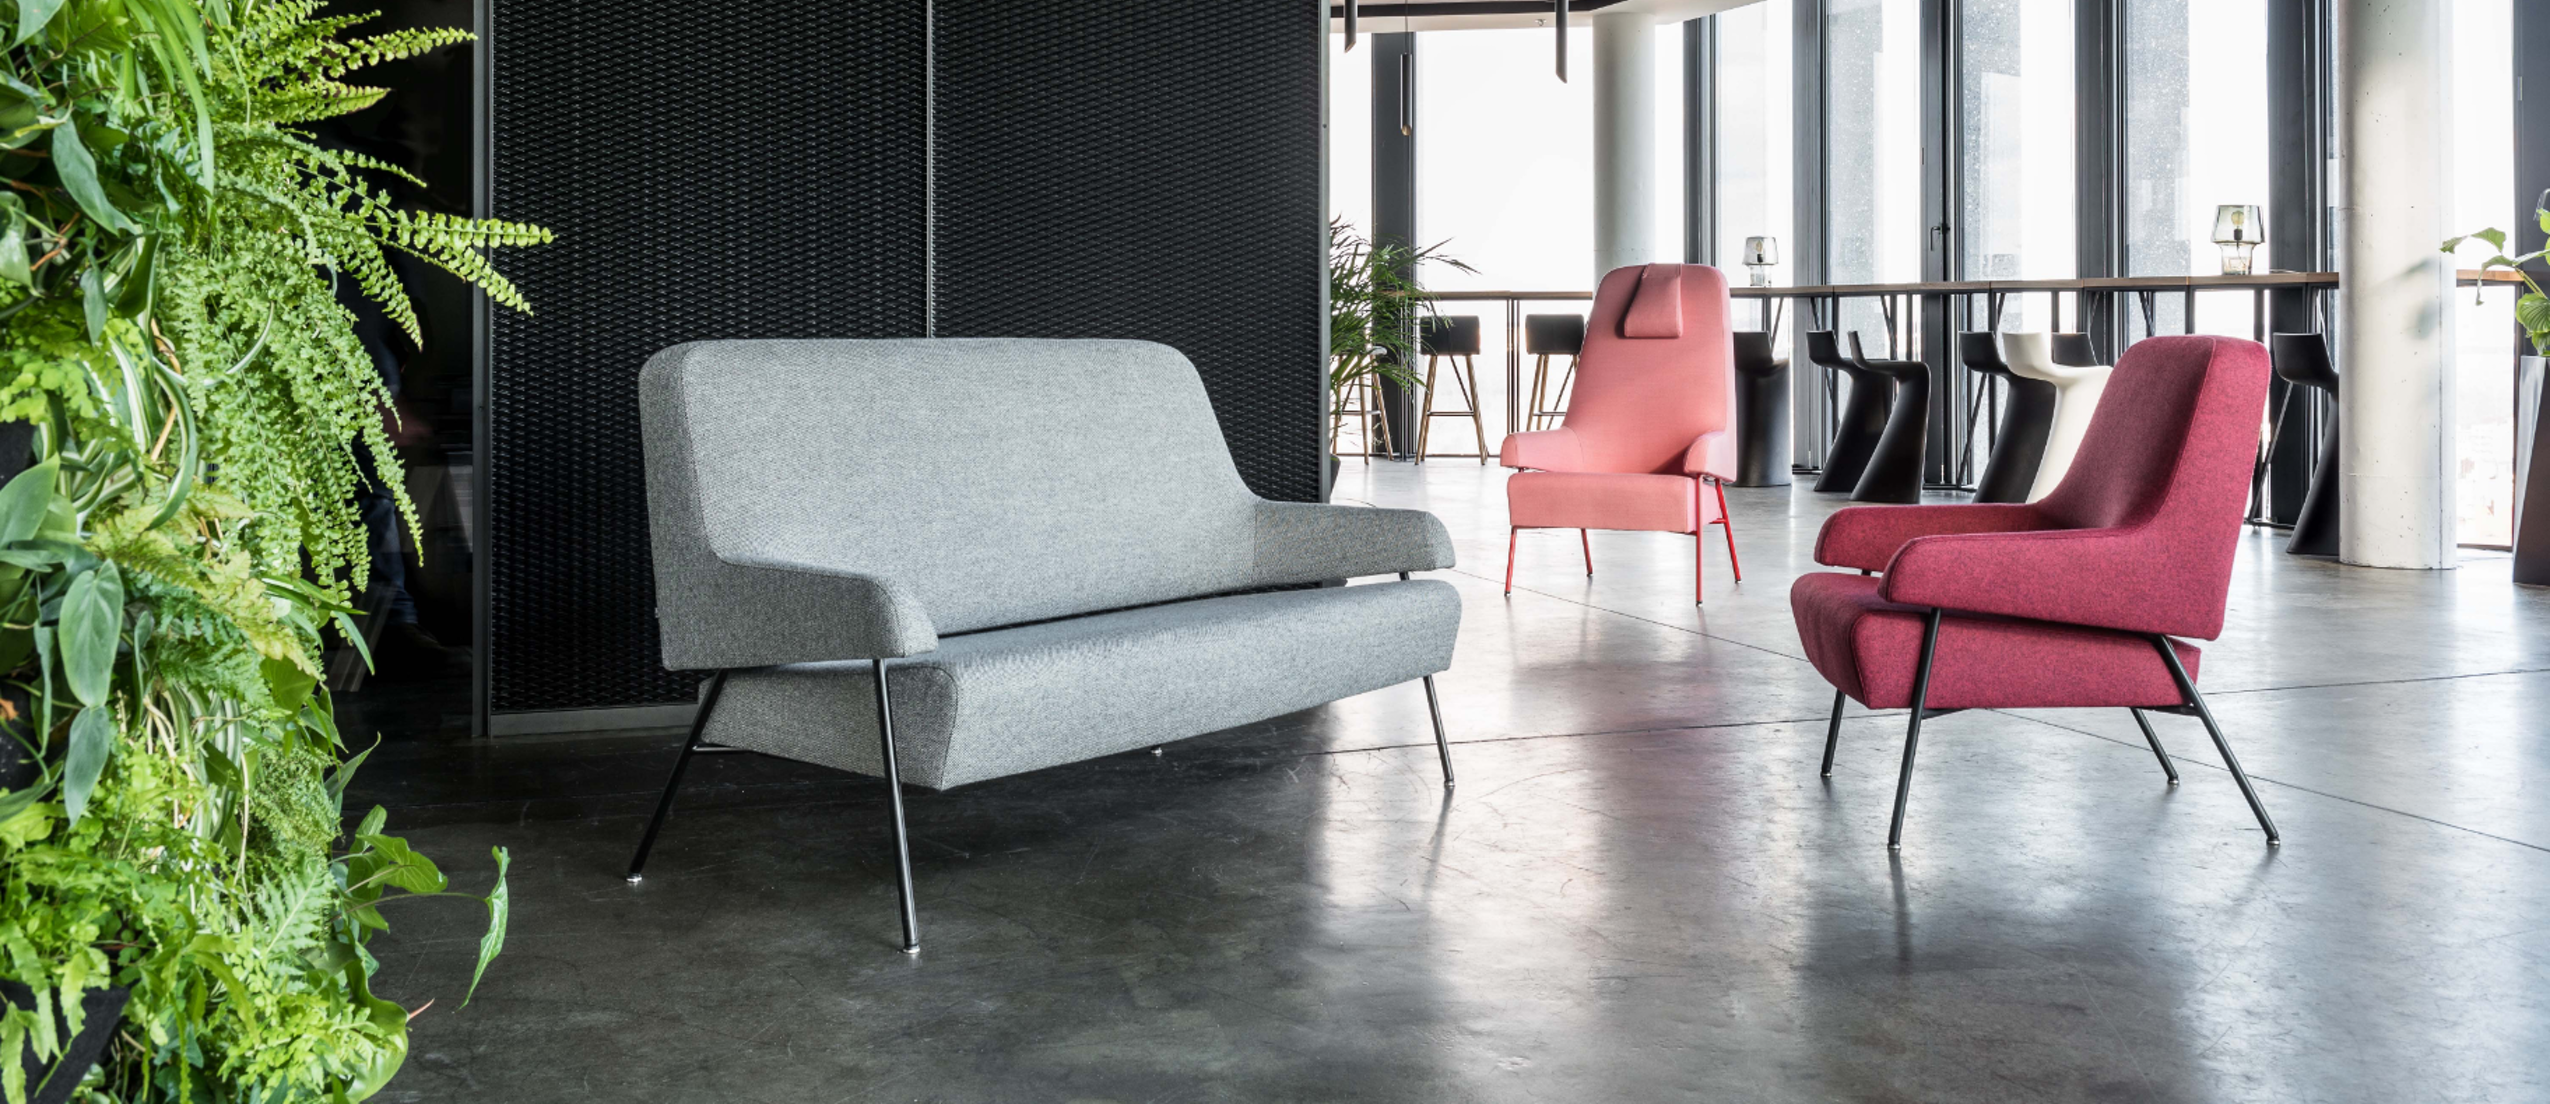 Changing the way people think about office furniture